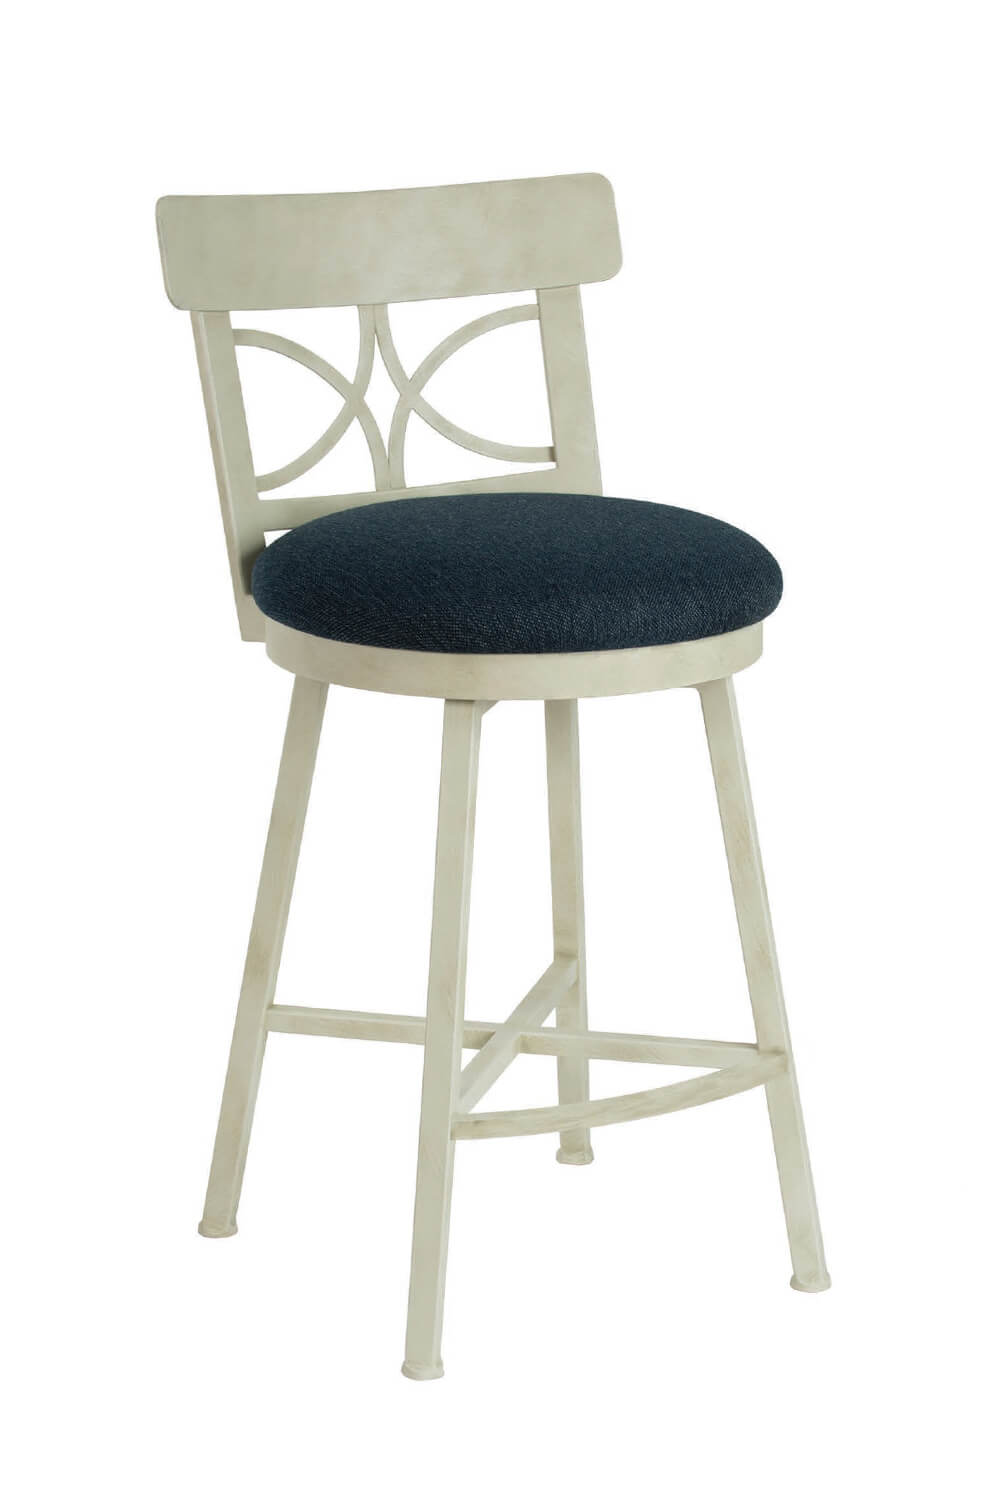 Superb Sausalito Swivel Stool With Back Creativecarmelina Interior Chair Design Creativecarmelinacom